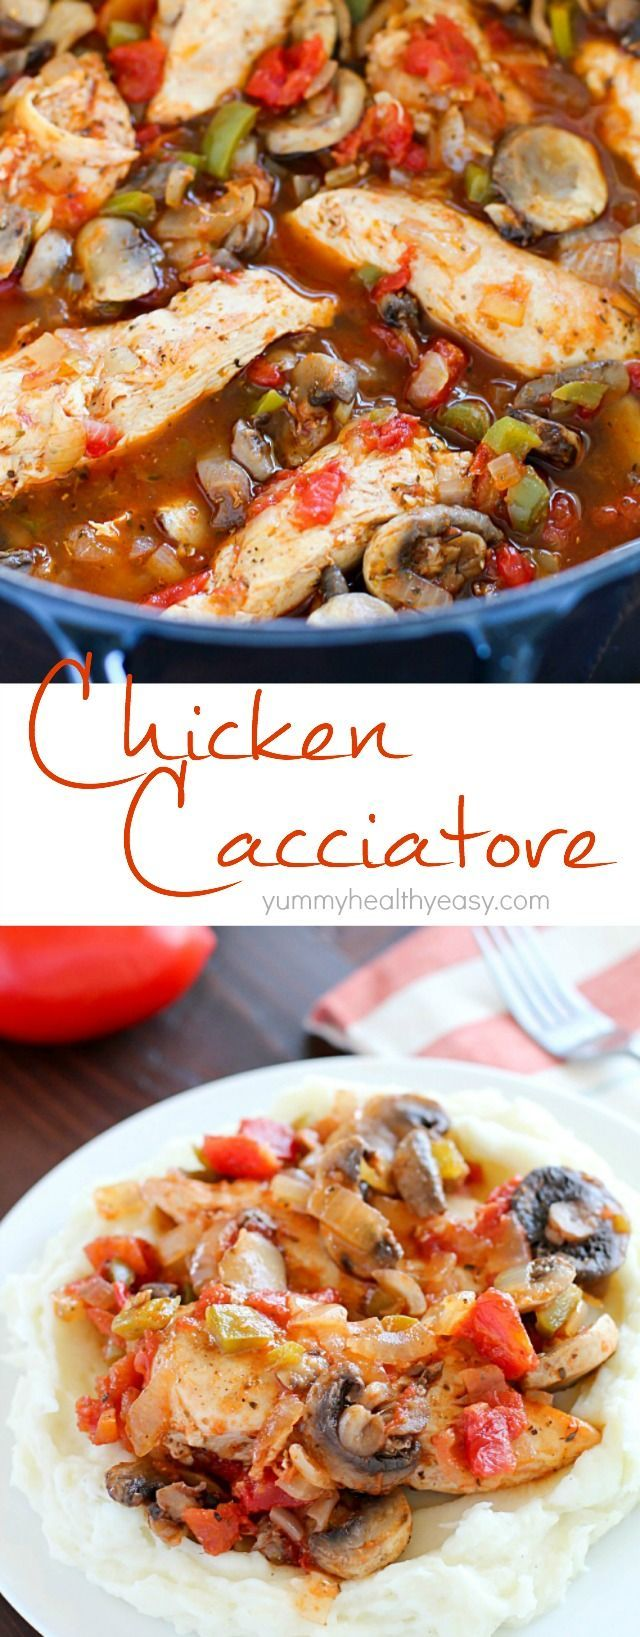 This Chicken Cacciatore Recipe is full of chicken and vegetables in a flavorful tomato sauce. It's an easy, comforting and healthy dinner the whole family will love!